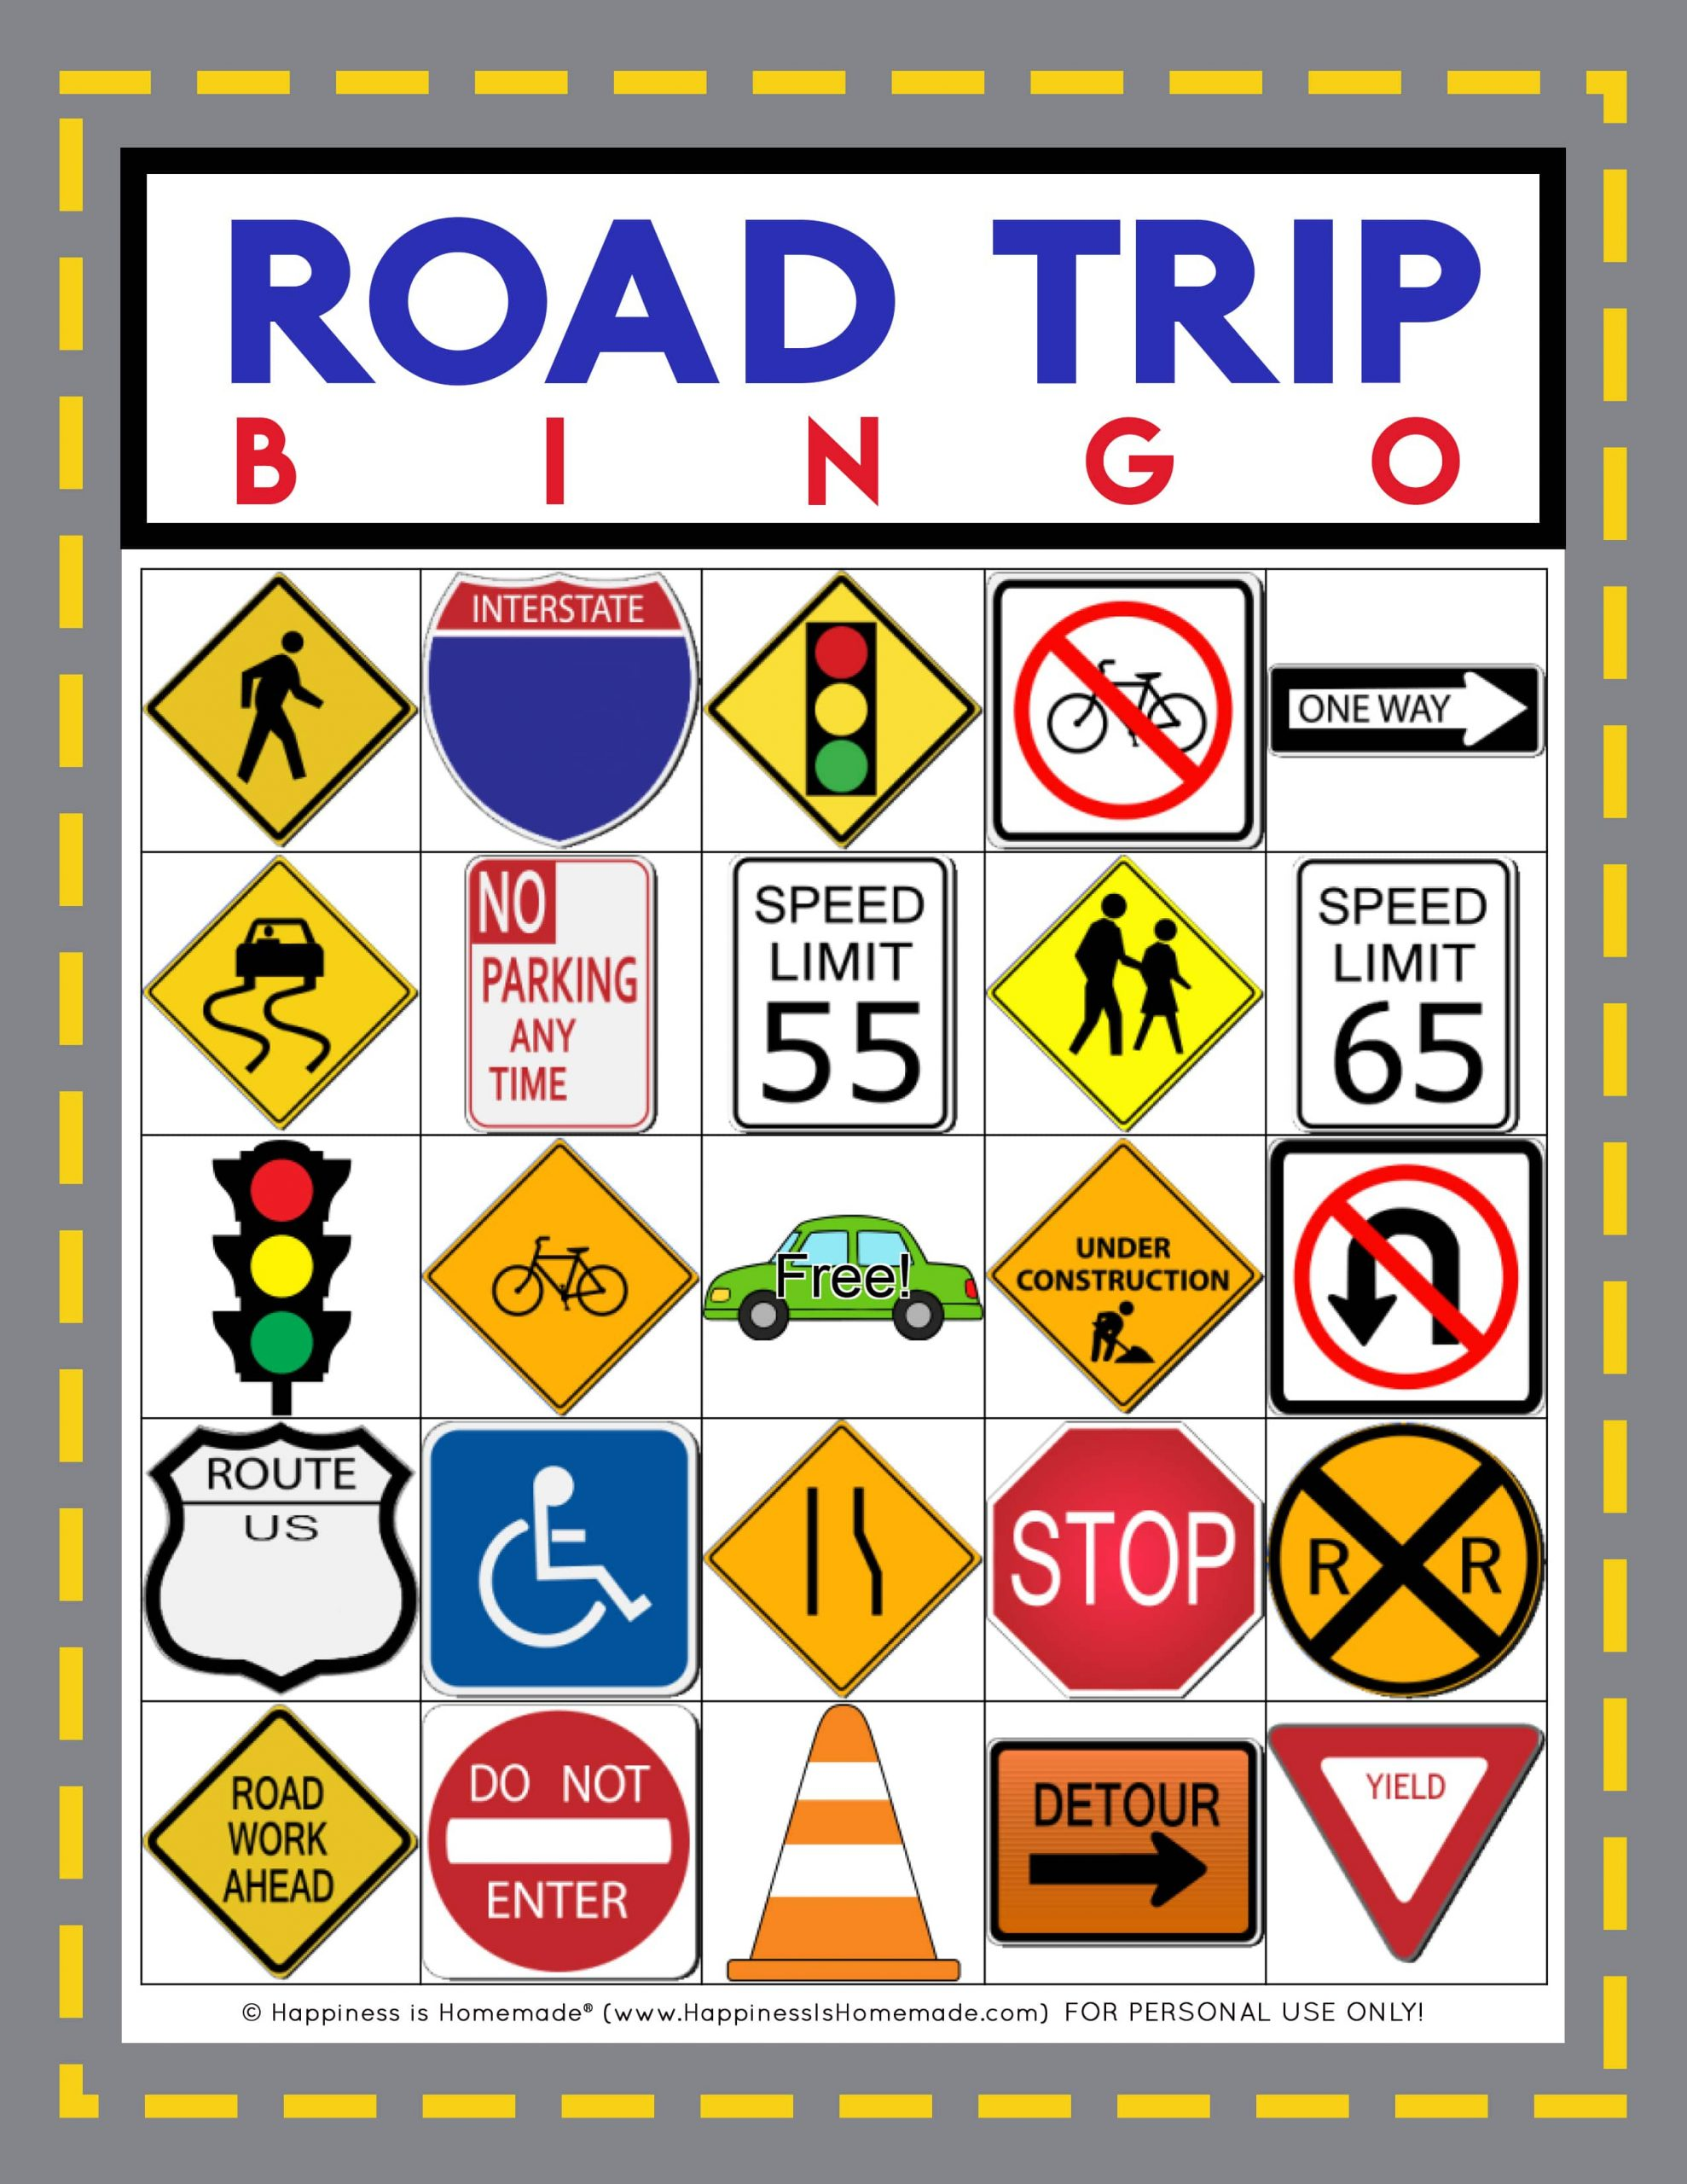 Road Trip Bingo Game - Free Printable - Happiness Is Homemade